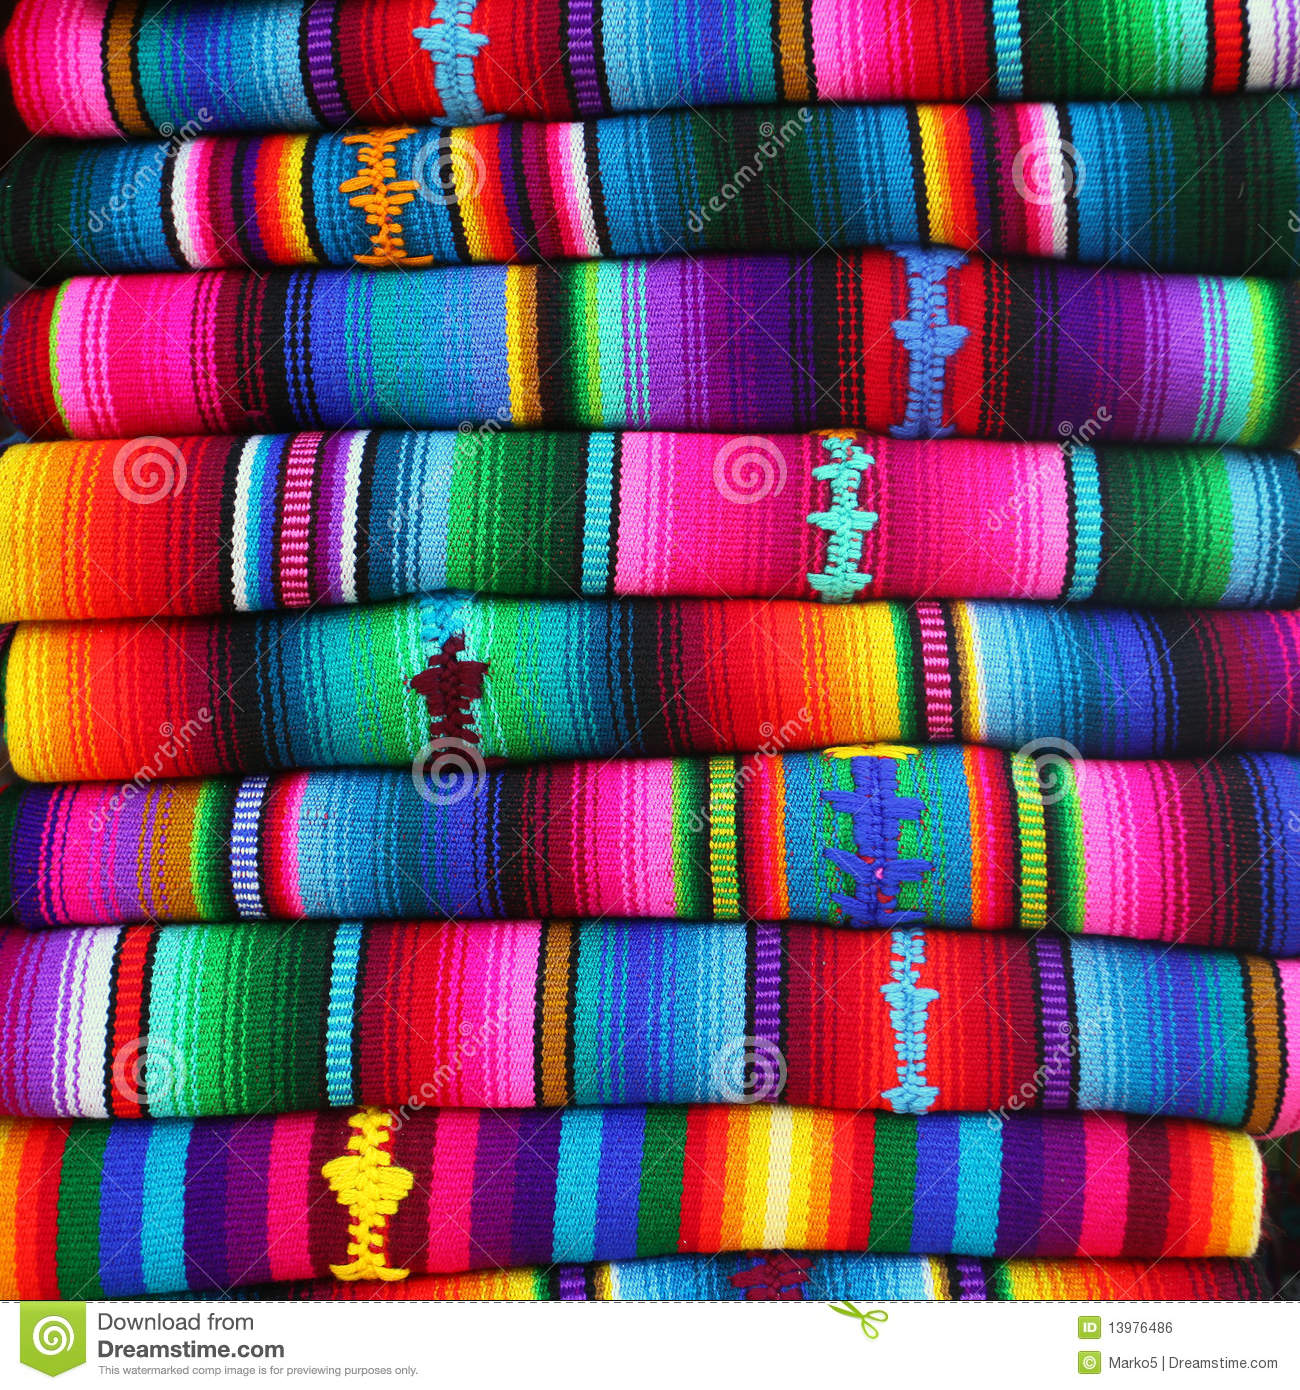 the hispanic culture is colorful and More than 50 programs focusing on these cultures are planned over the  a  vibrant and colorful celebration of the latino and hispanic cultures.